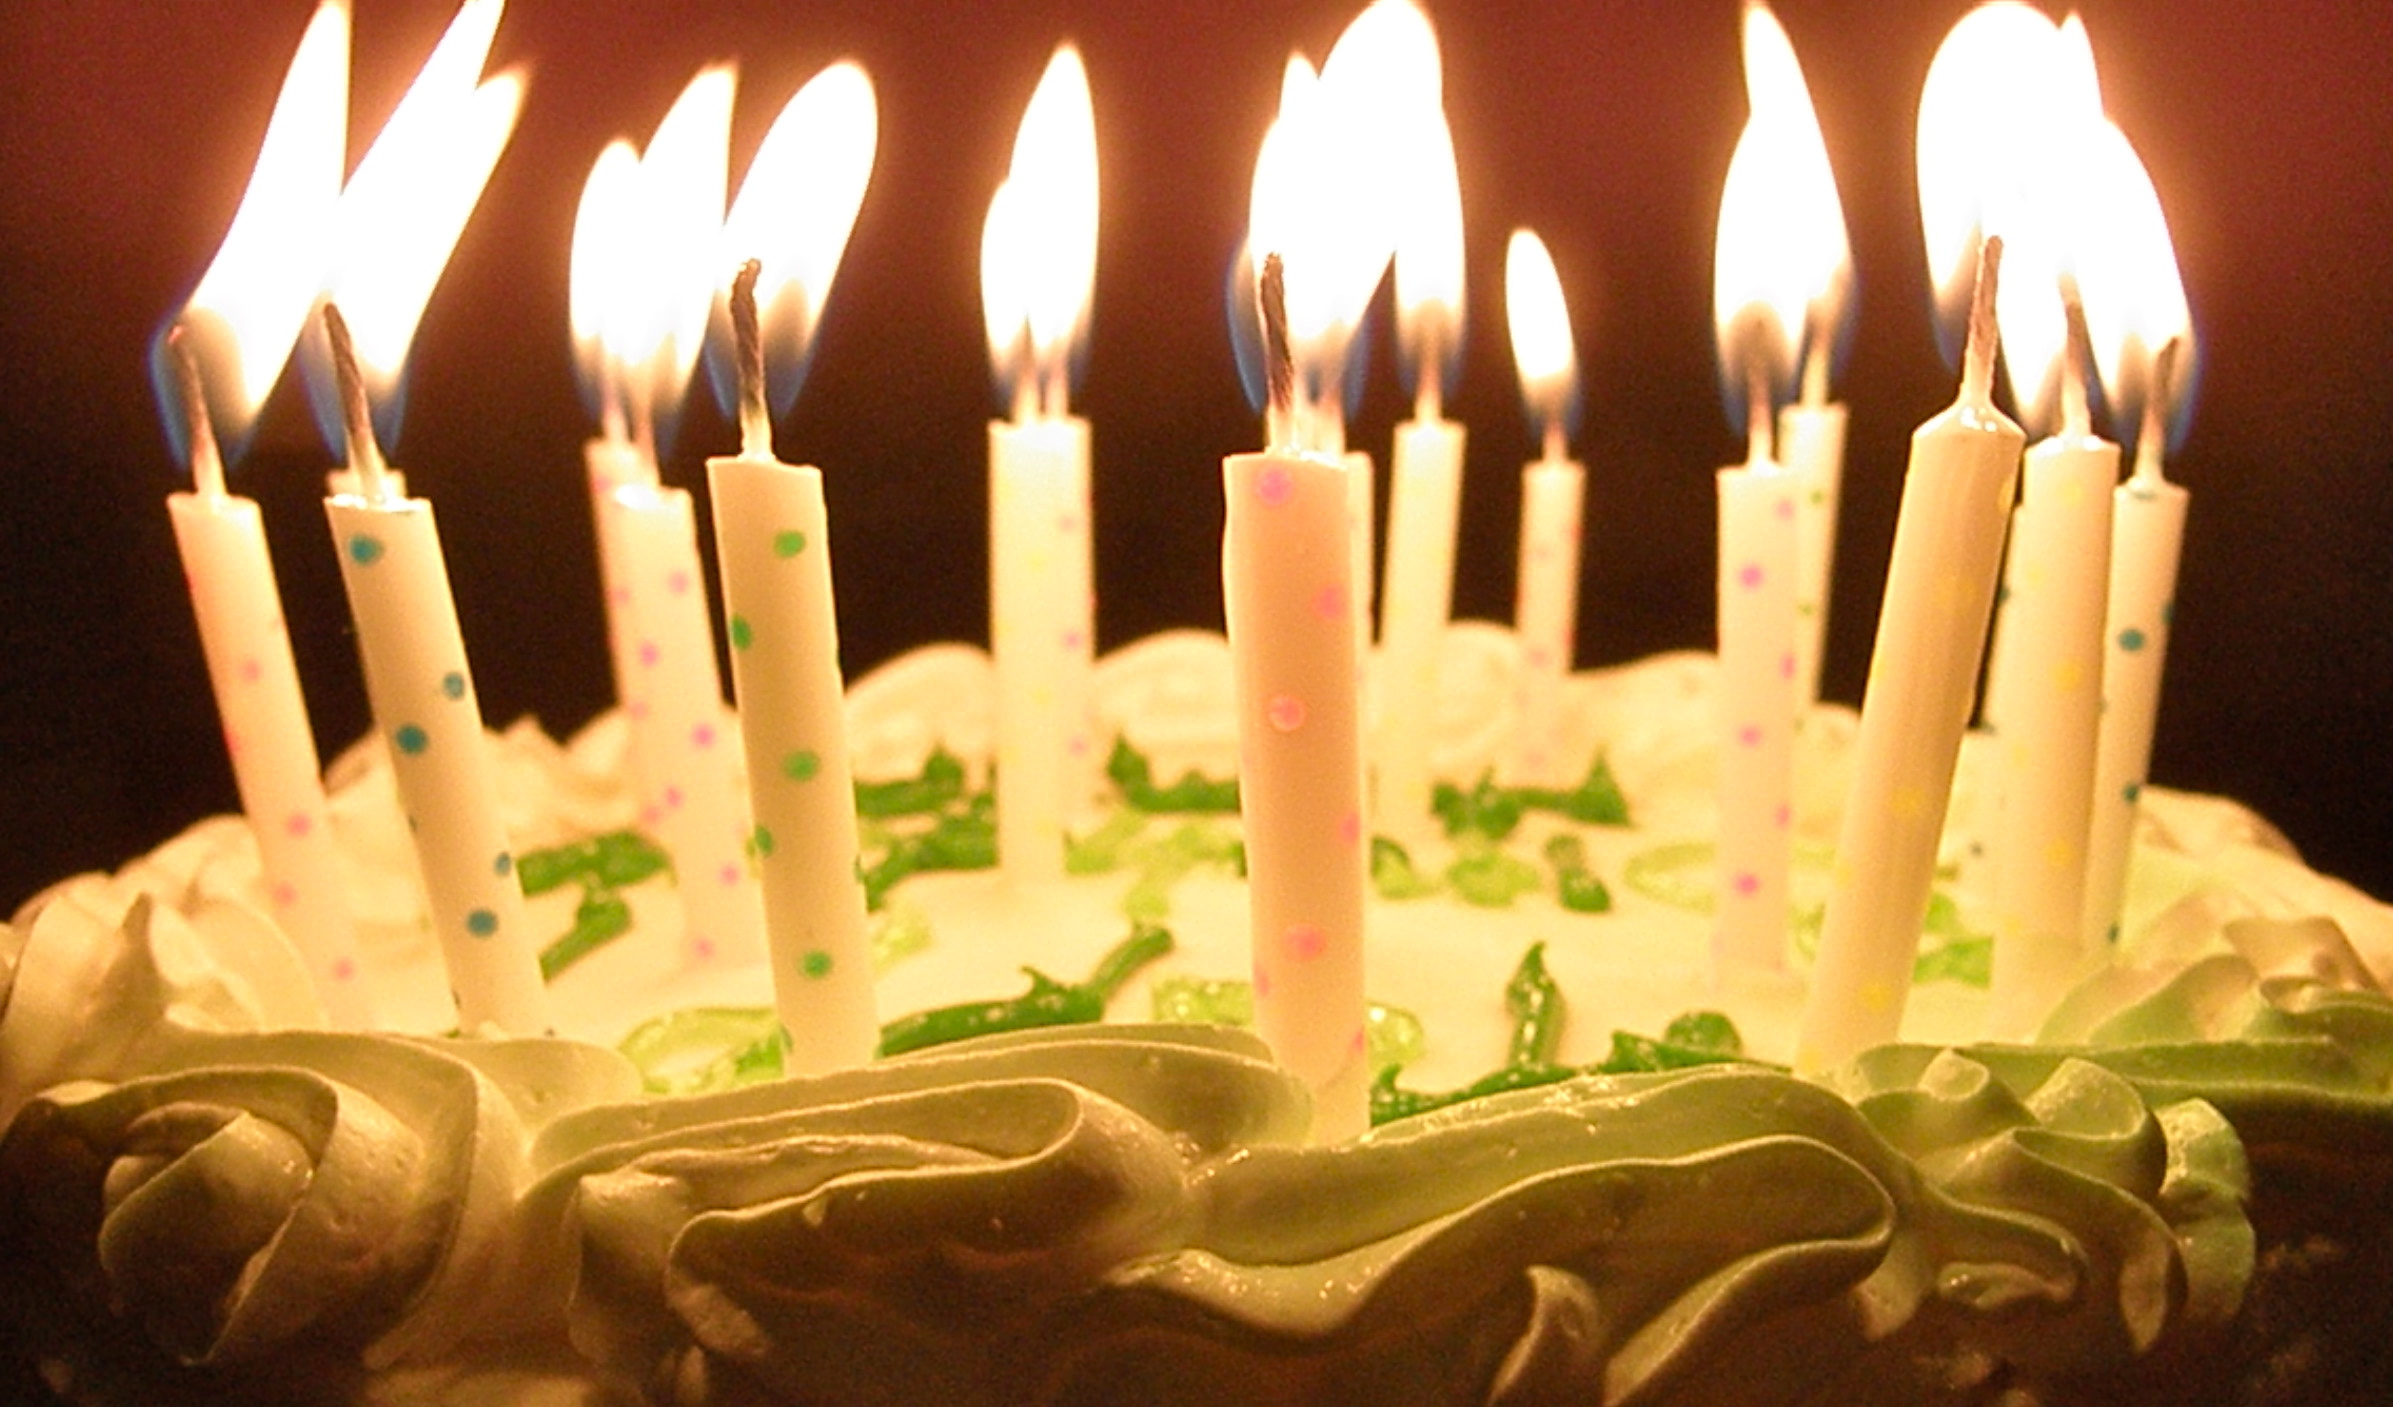 picture of birthday candles burning ; Holidays___Birthday_Burning_candles_in_a_cake_for_birthday_051795_